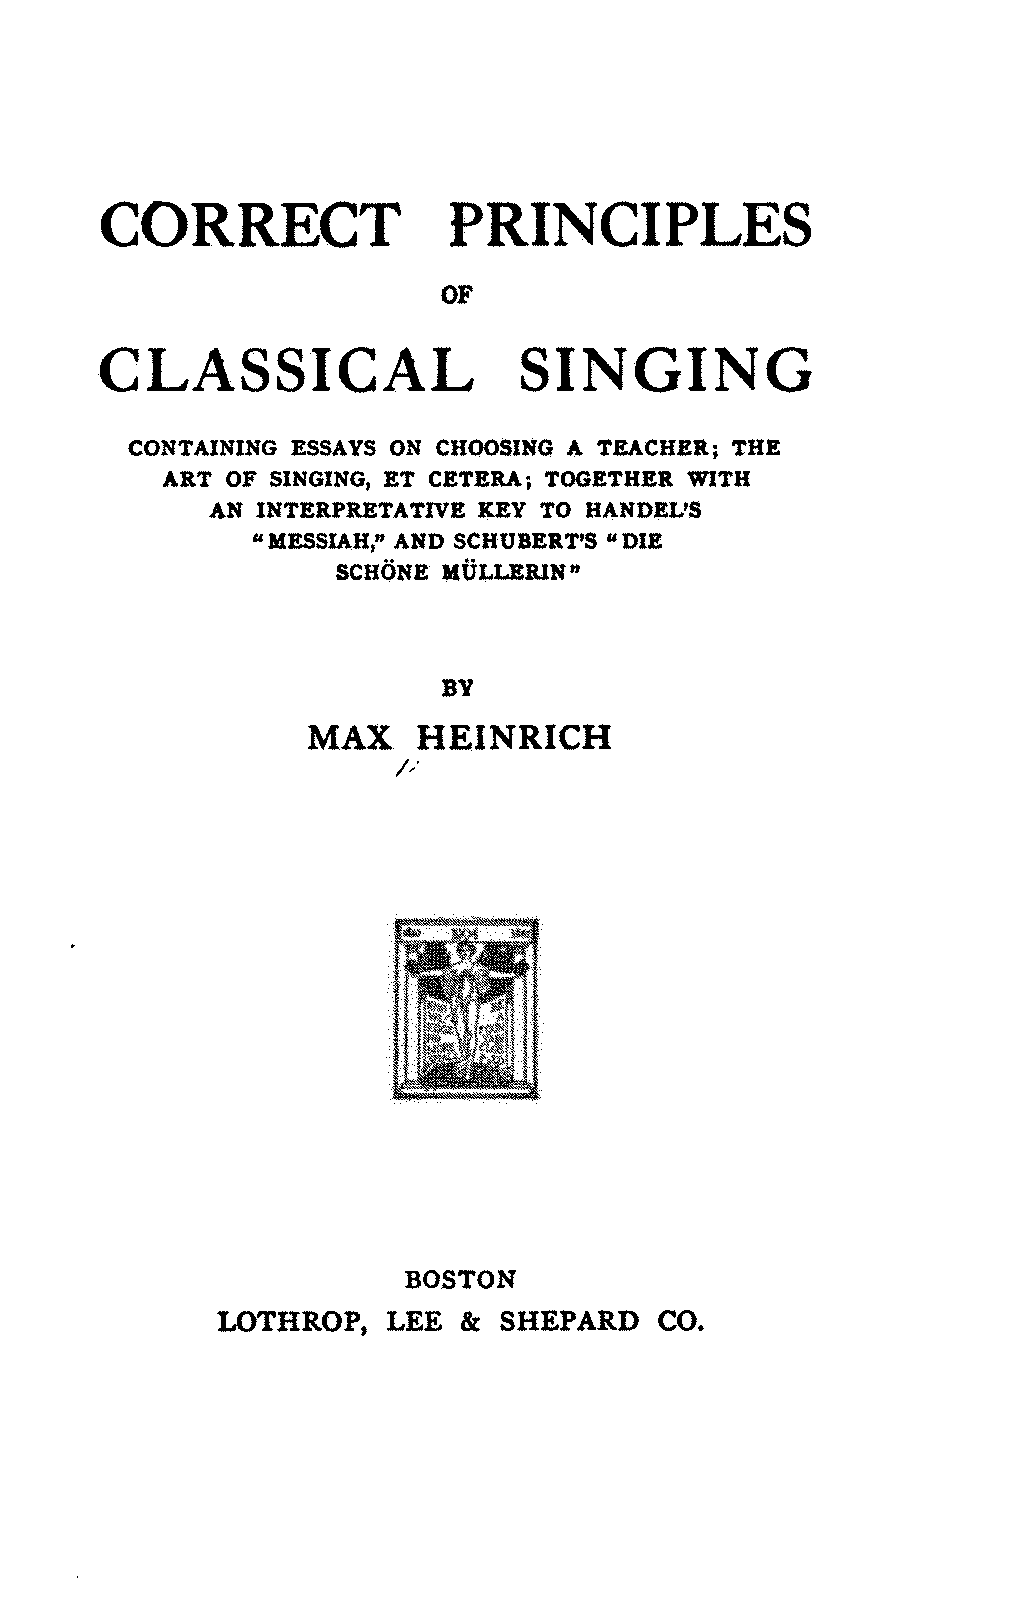 PMLP579287-MHeinrich Correct Principles of Classical Singing.pdf